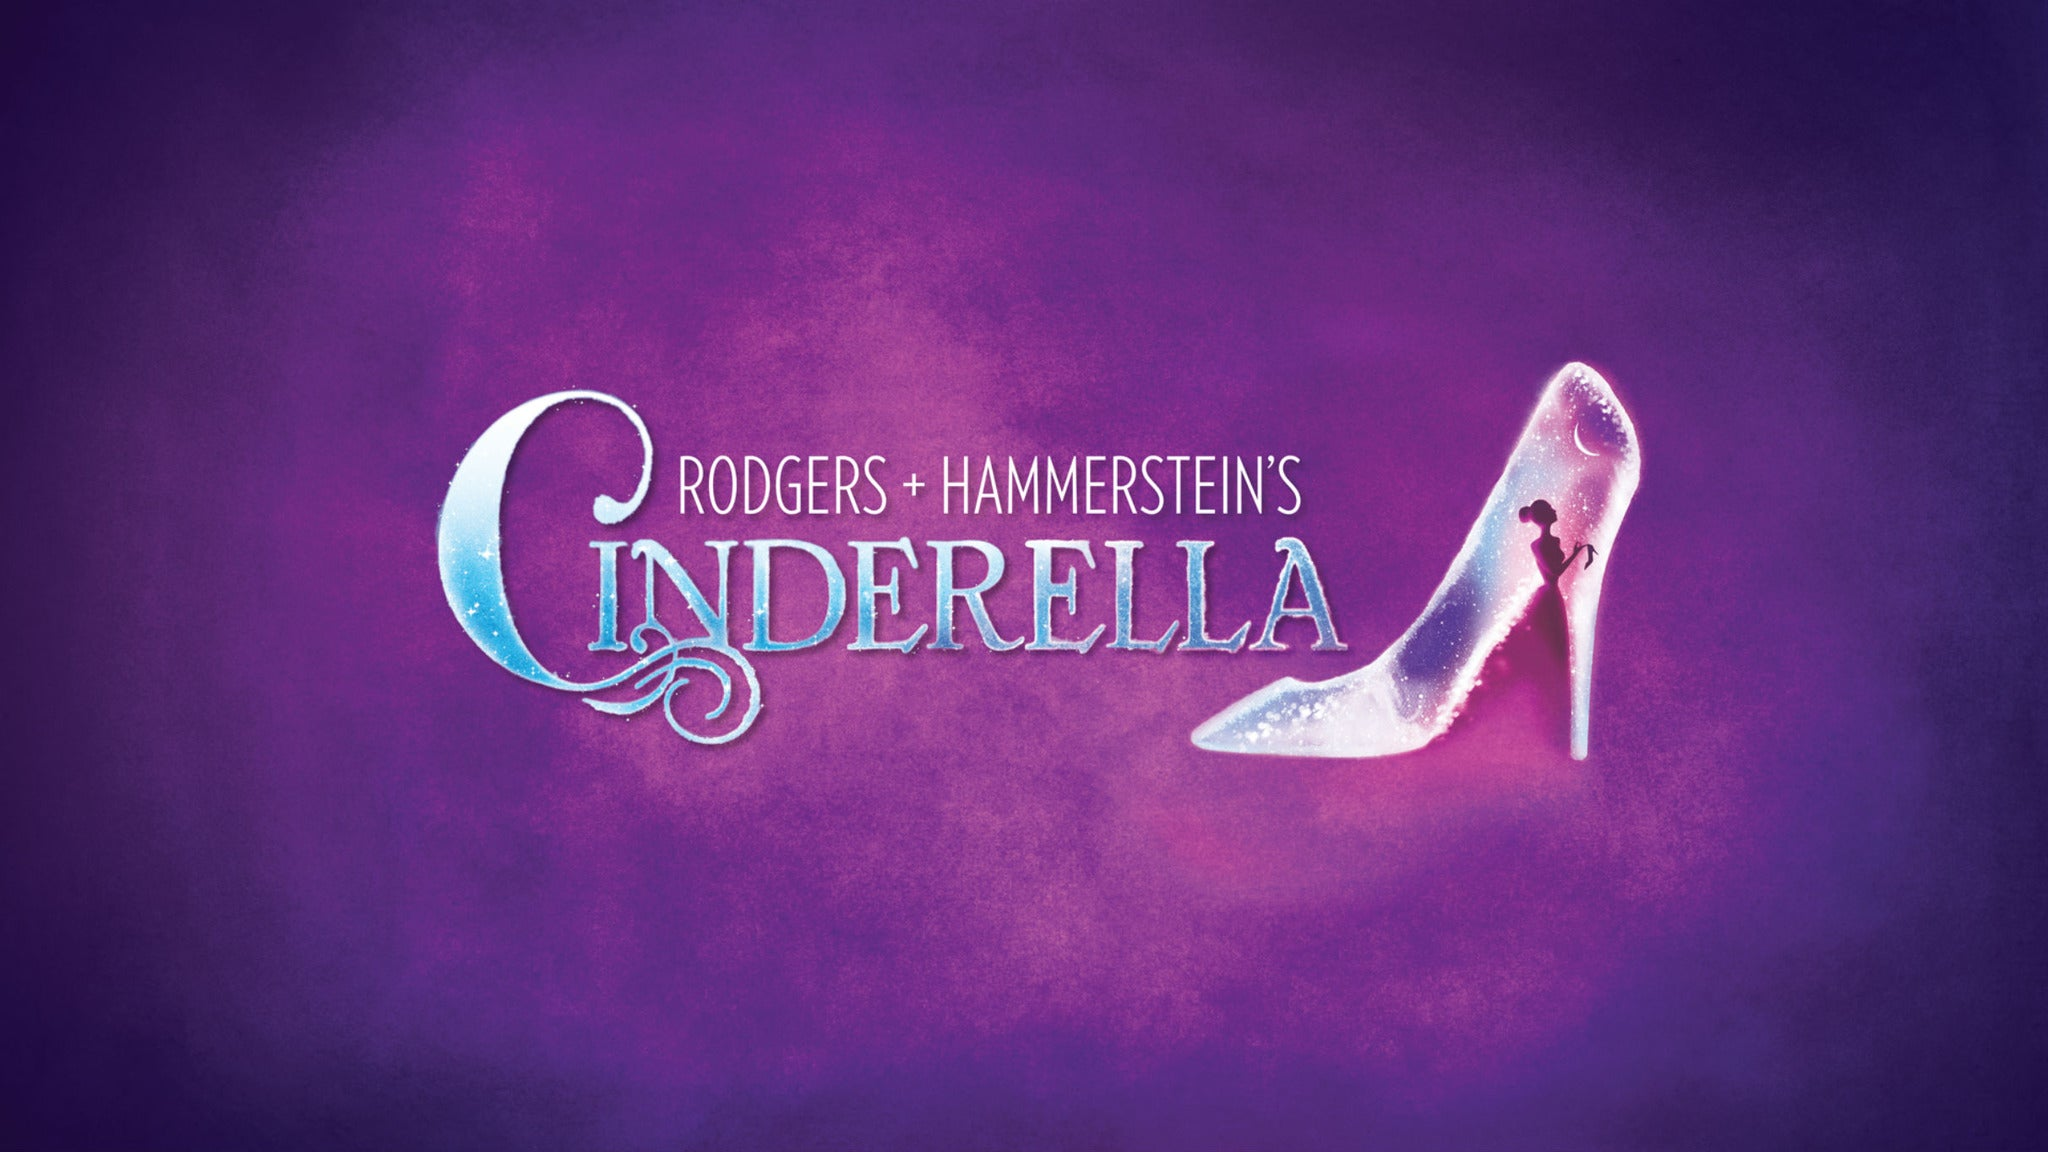 Cinderella-Theater at Midland Center for the Arts